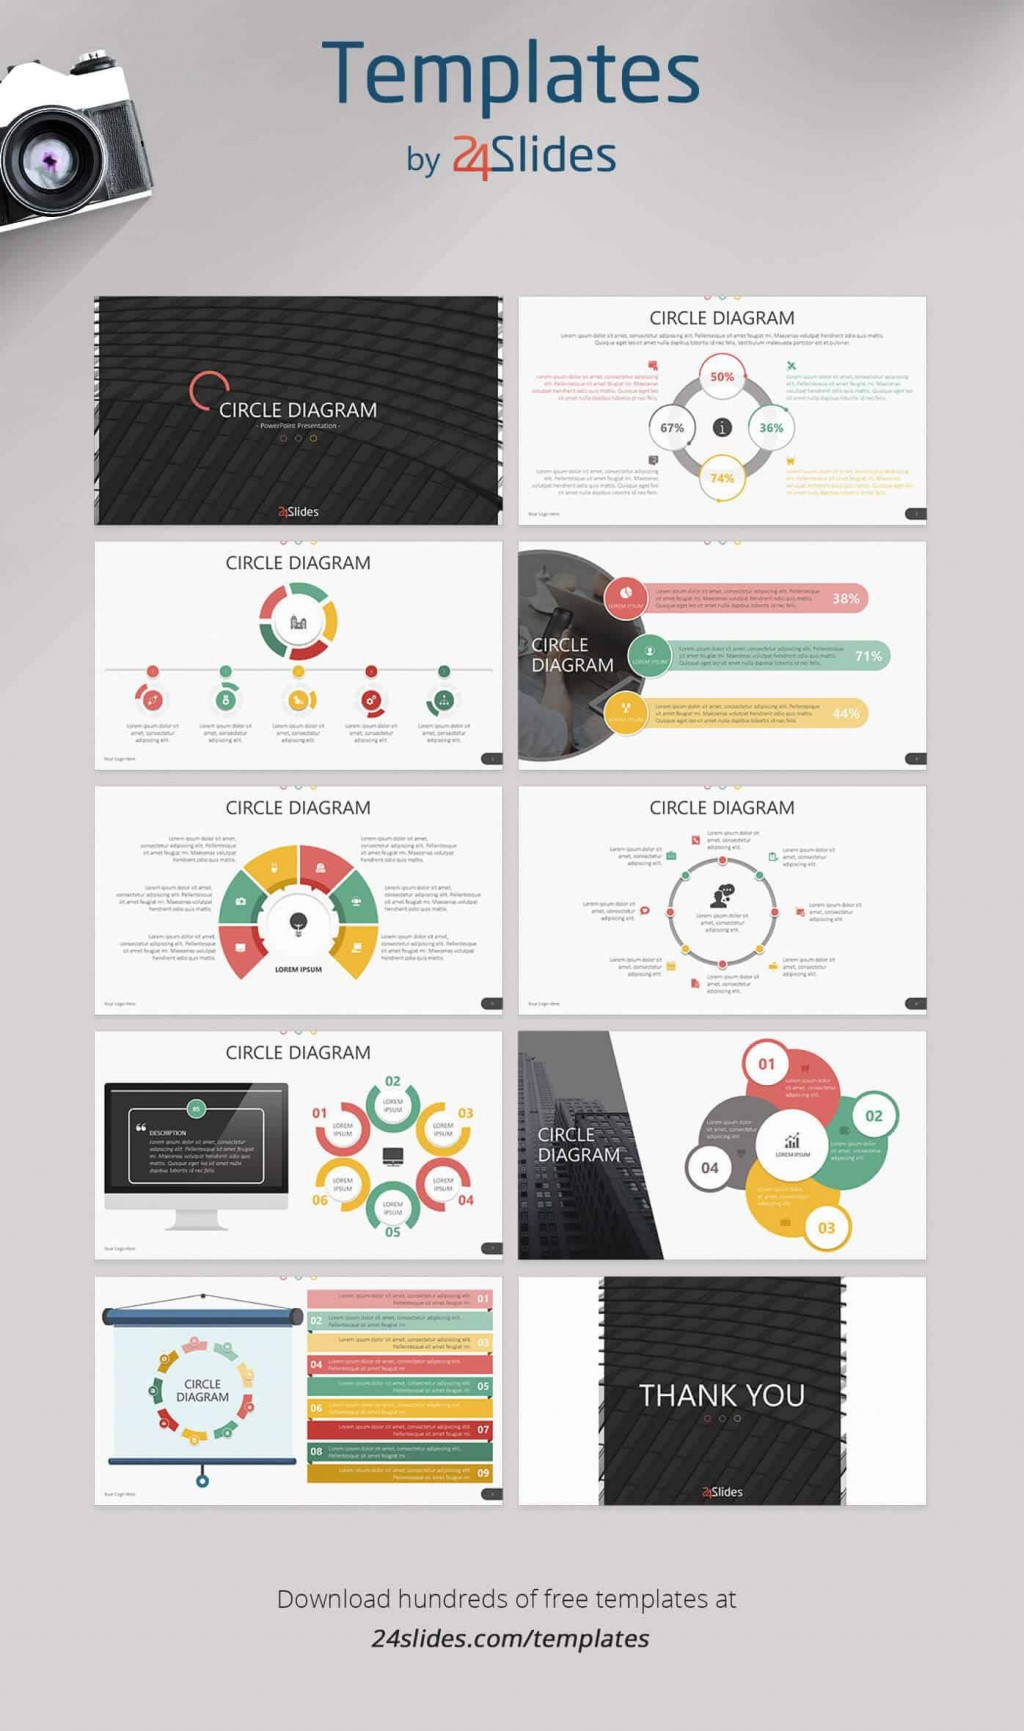 000 Breathtaking Ppt Presentation Template Free High Def  Professional Best For Corporate DownloadLarge